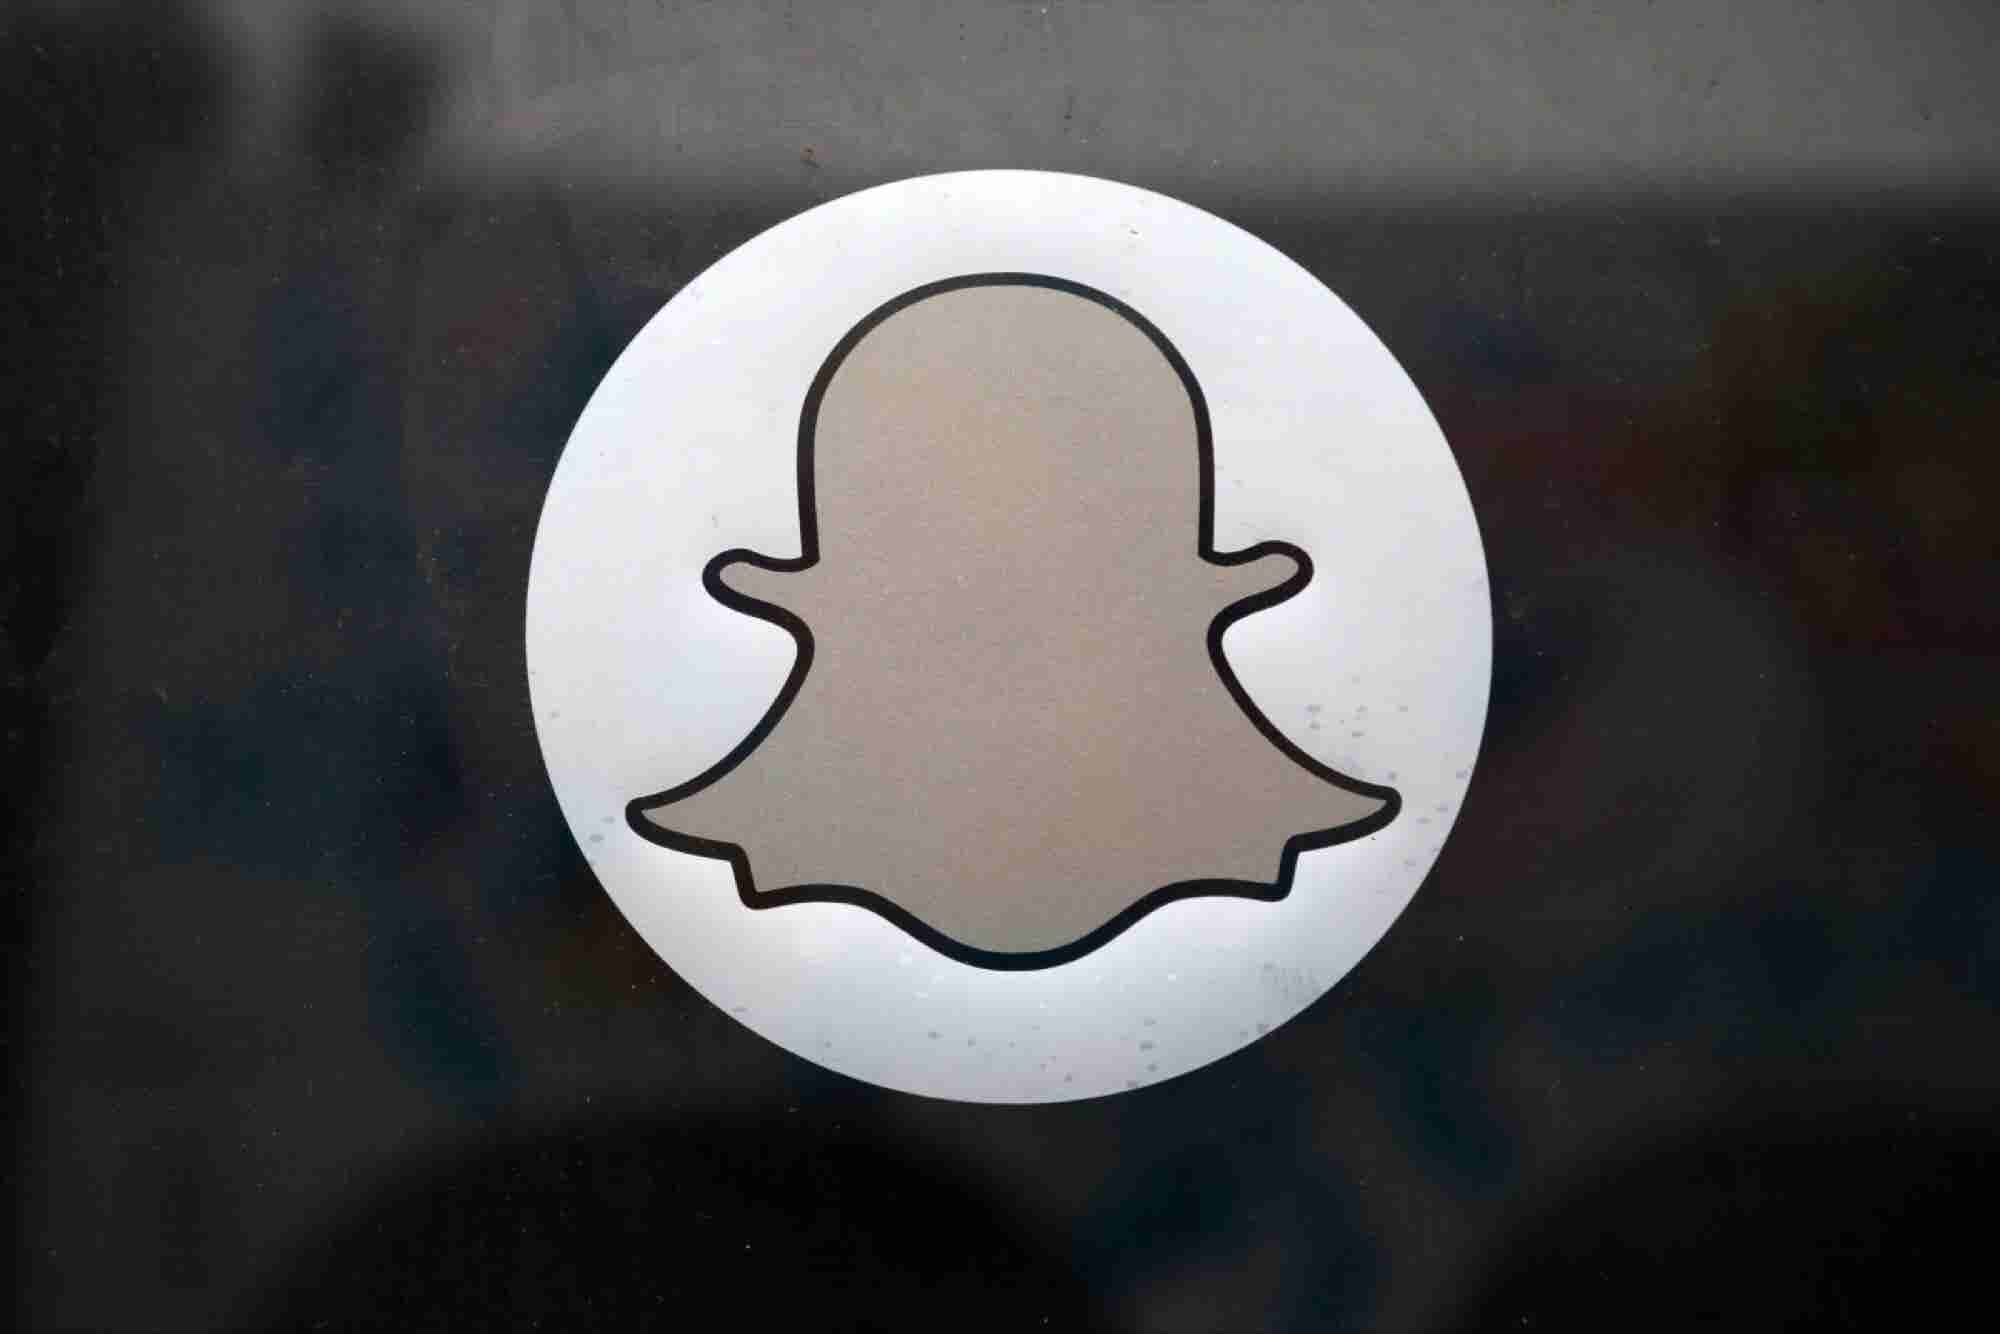 Snapchat, Like Facebook, Now Boasts 4 Billion Video Views Every Day